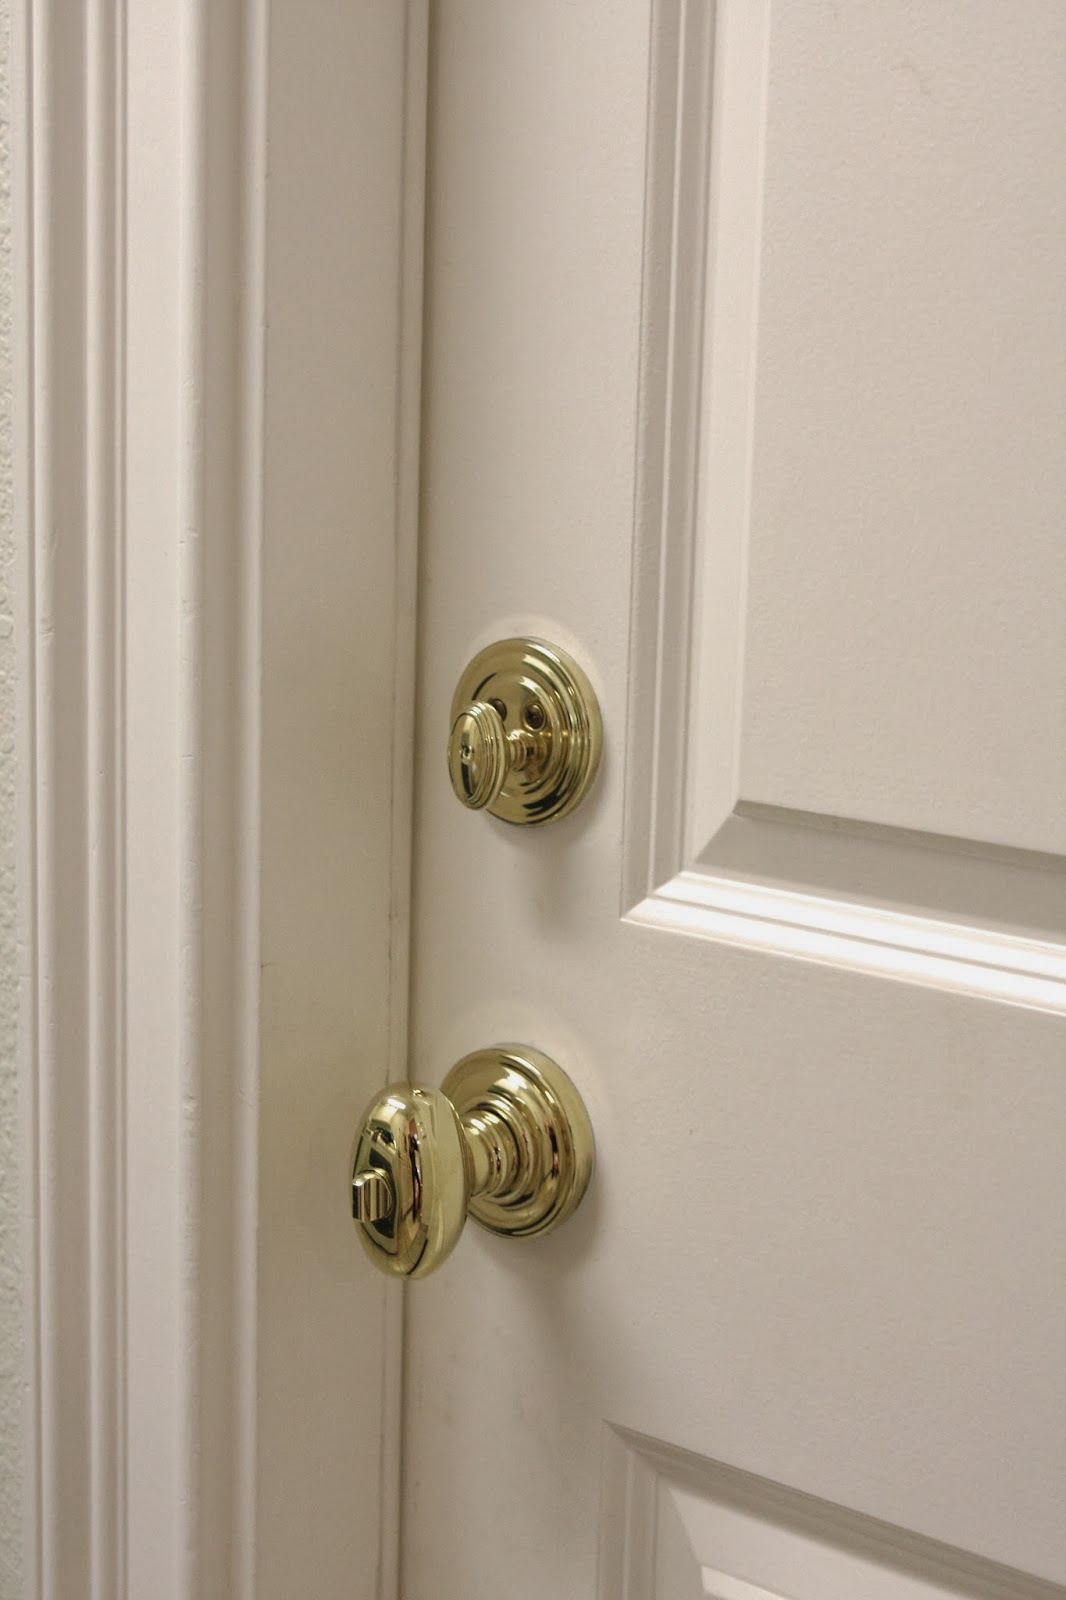 Brass bathroom door handles - The Doors With Knobs Were Basically Any Door That Was An Exterior On The Other Side Hello I Did Need To Lock Some Doors Around Here Locking A Bathroom